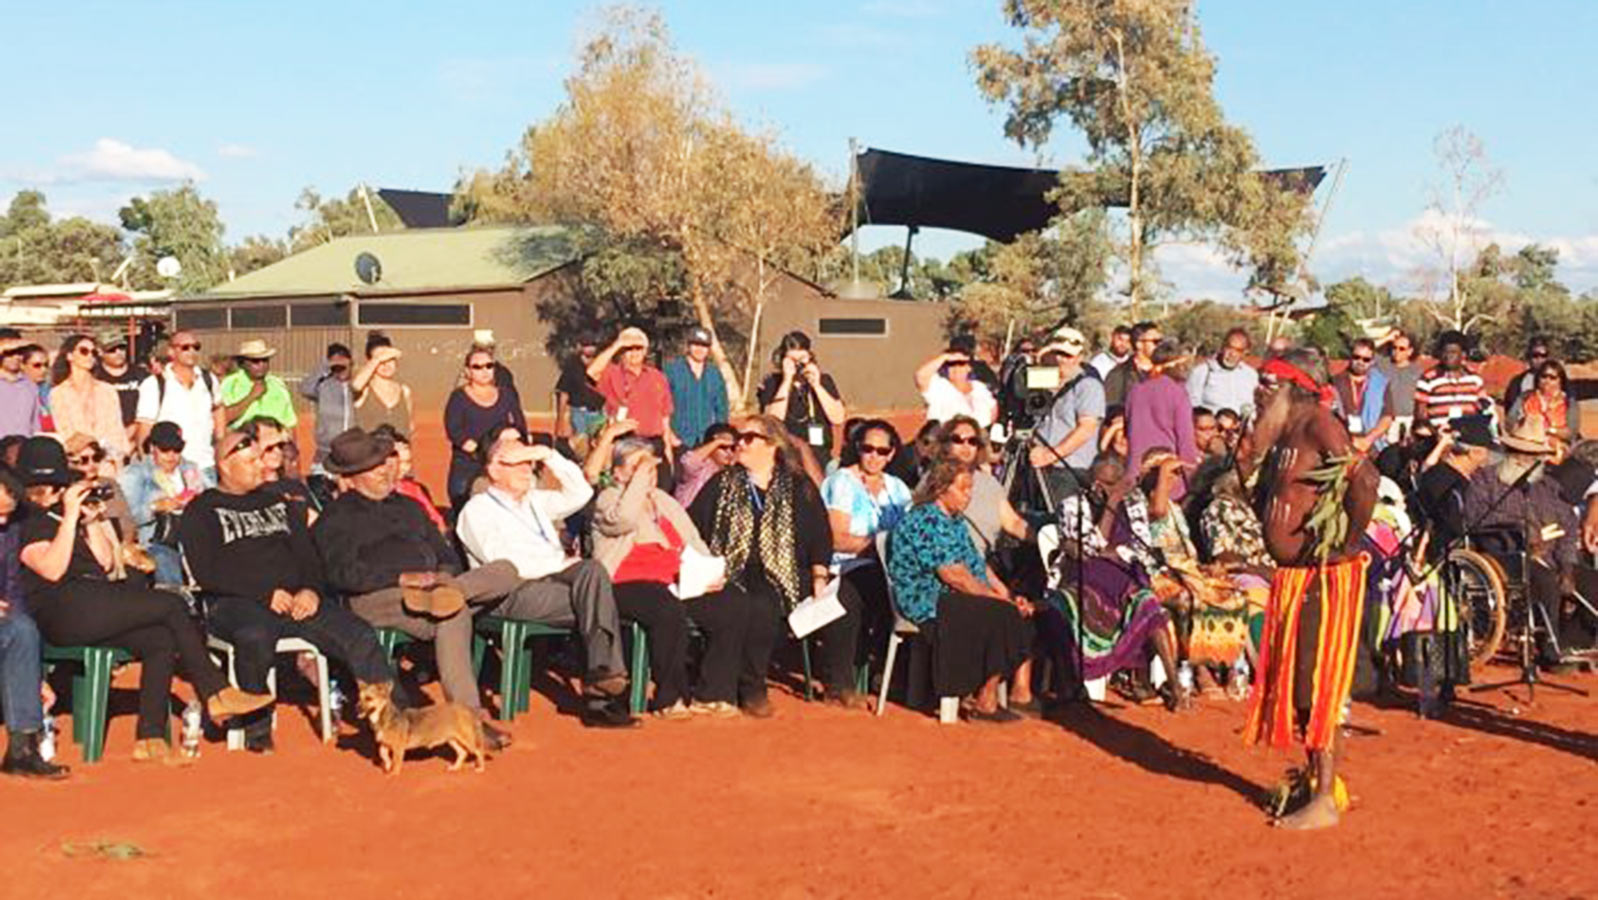 Indigenous leaders call for representative body and treaties process after Uluru convention